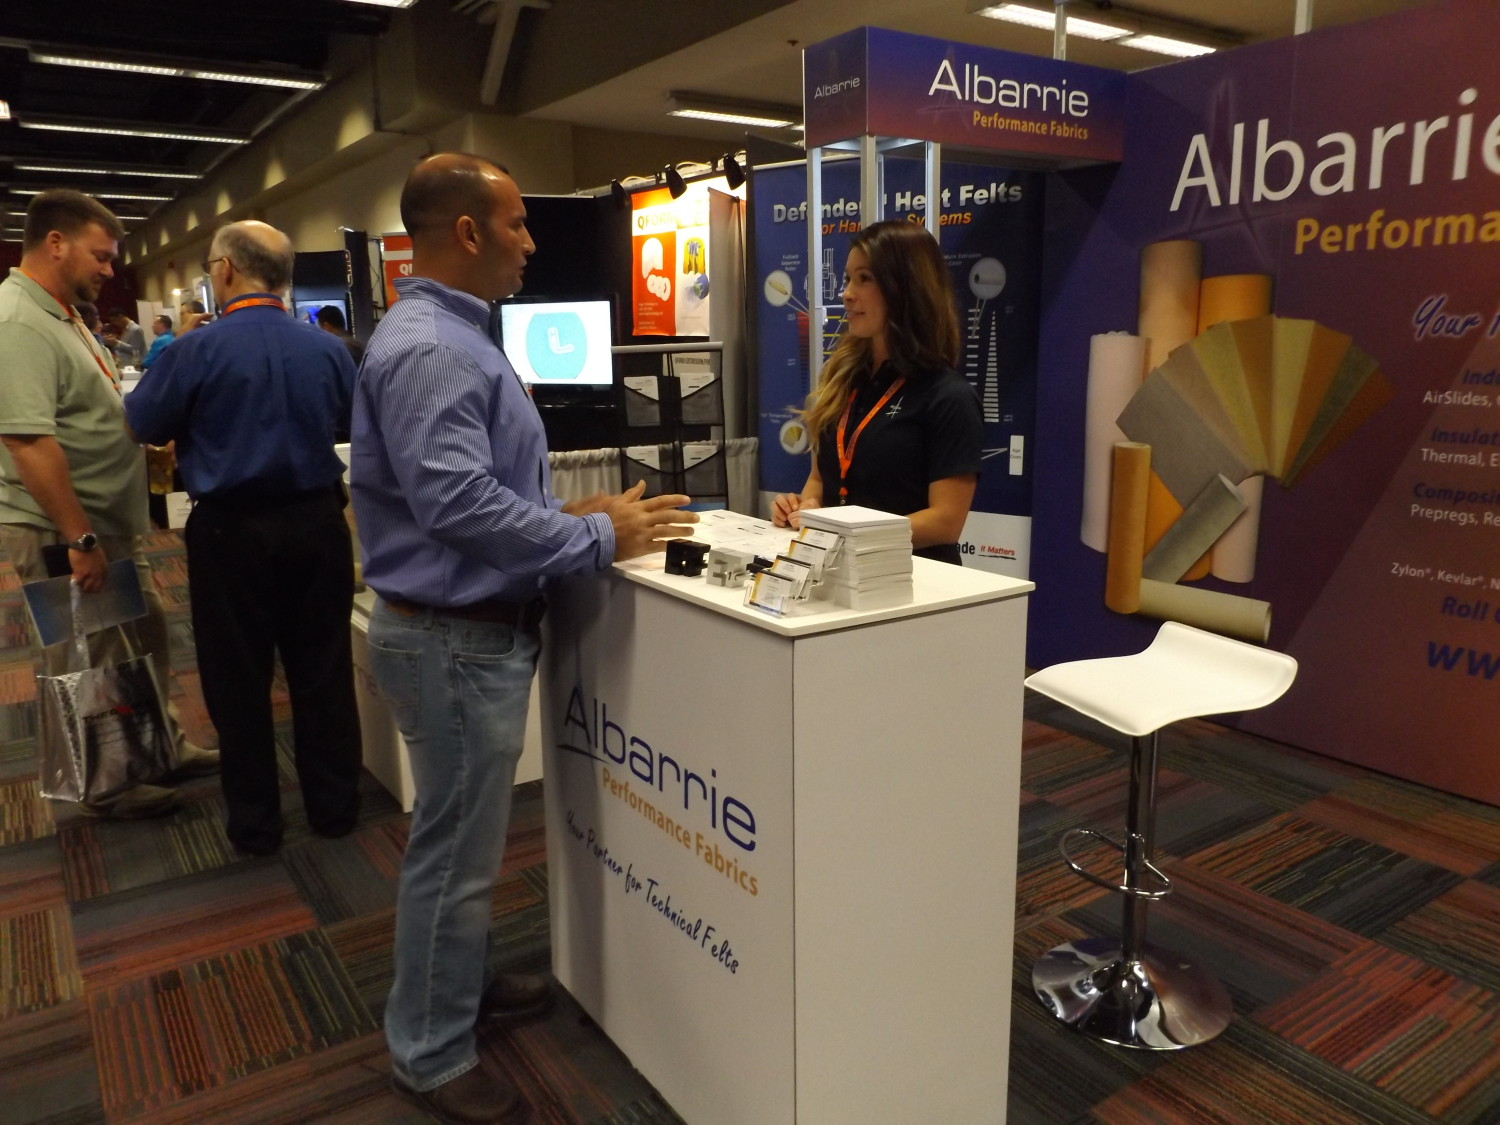 Industrial fabrics, Technology, aluminum extrusion, ET'16, technical felts, Albarrie, Technical seminar, Chicago